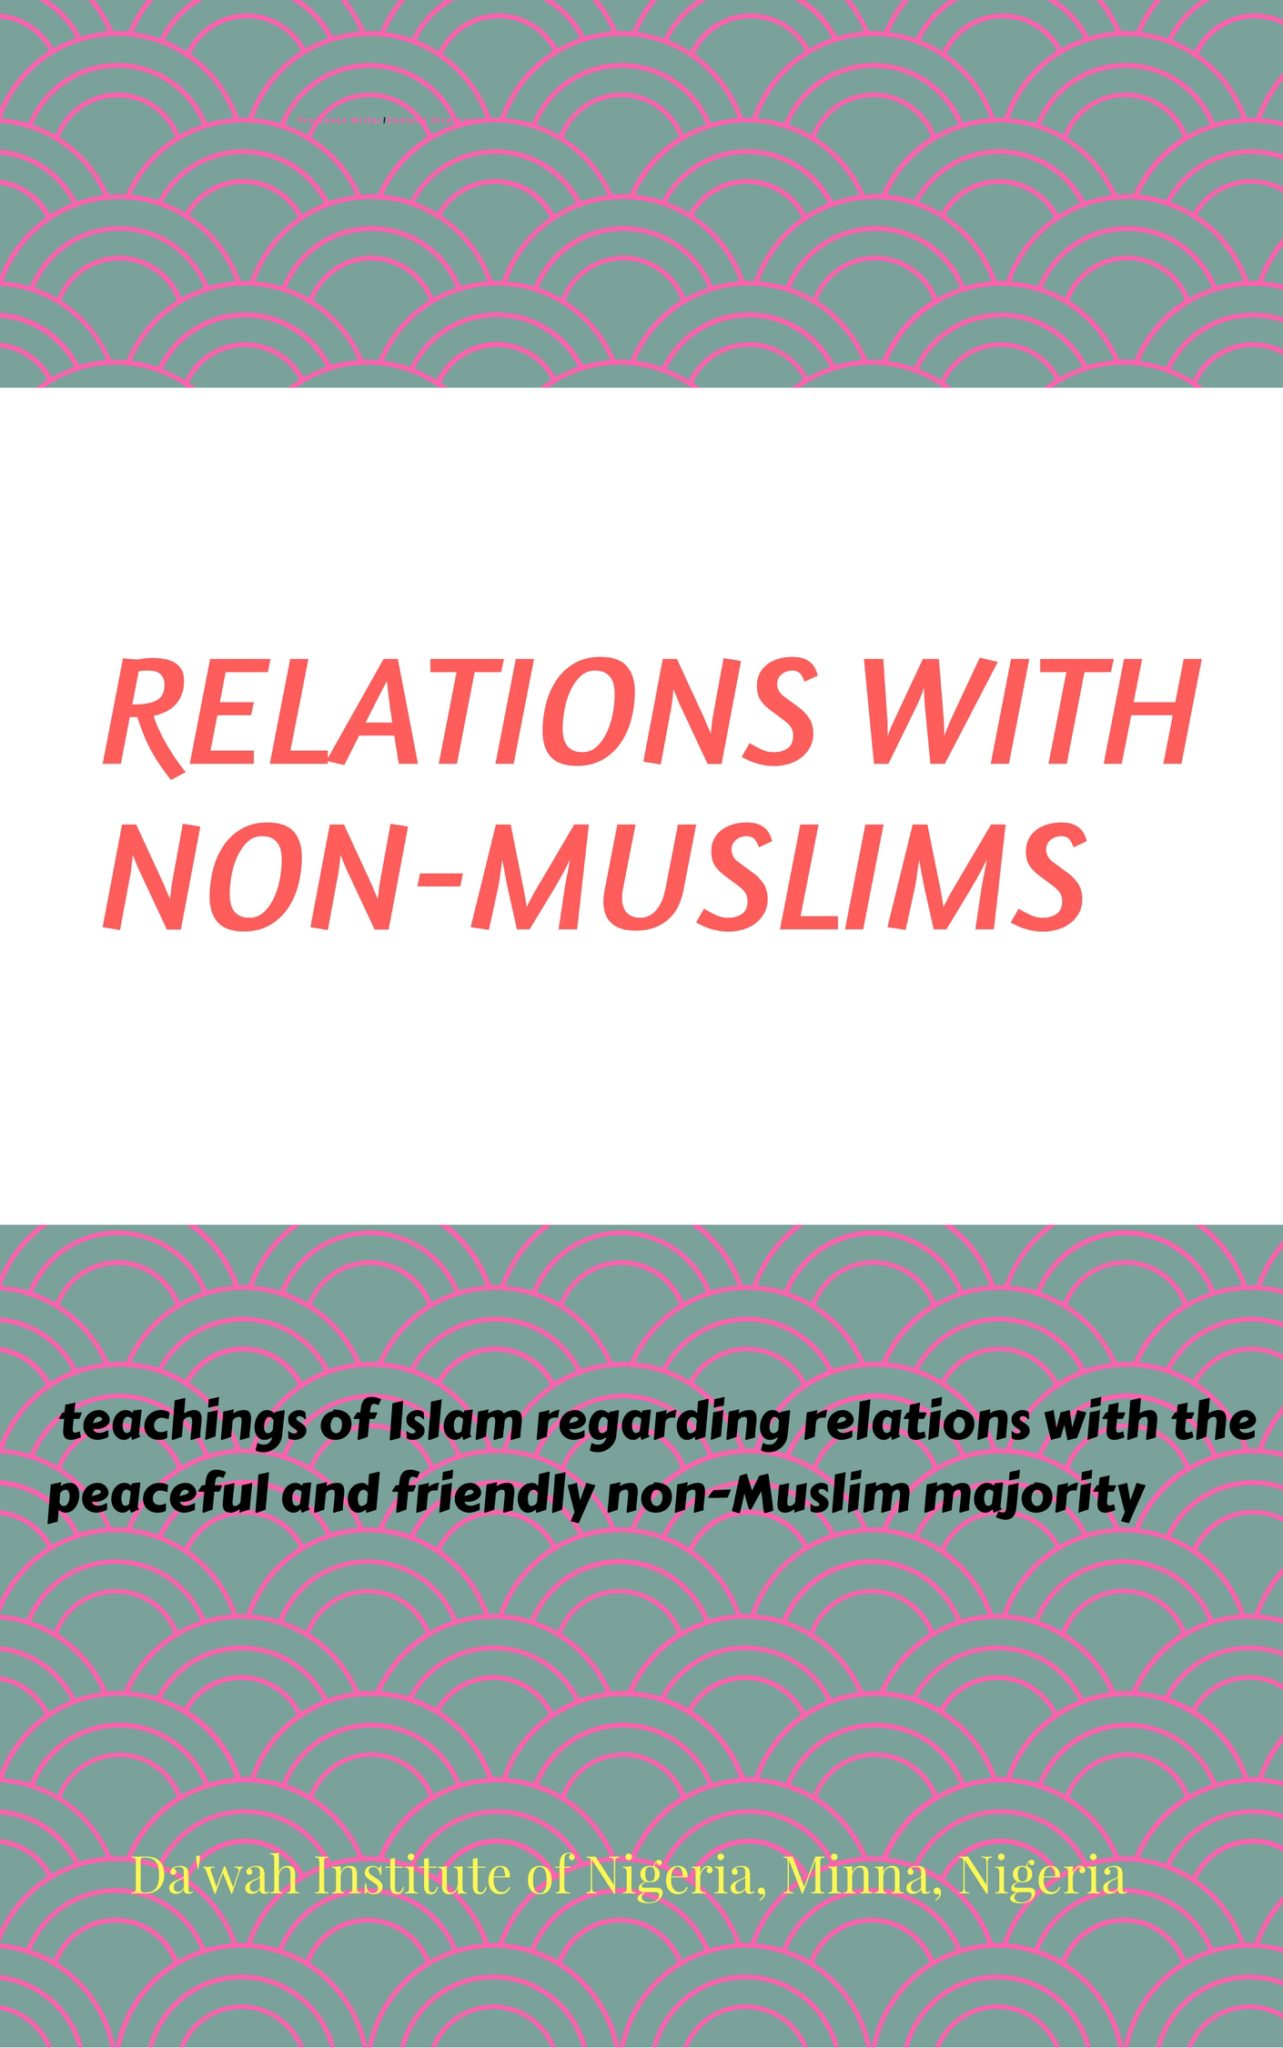 https://dawahinstitute.org/wp-content/uploads/Relations-With-Non-Muslims.jpg